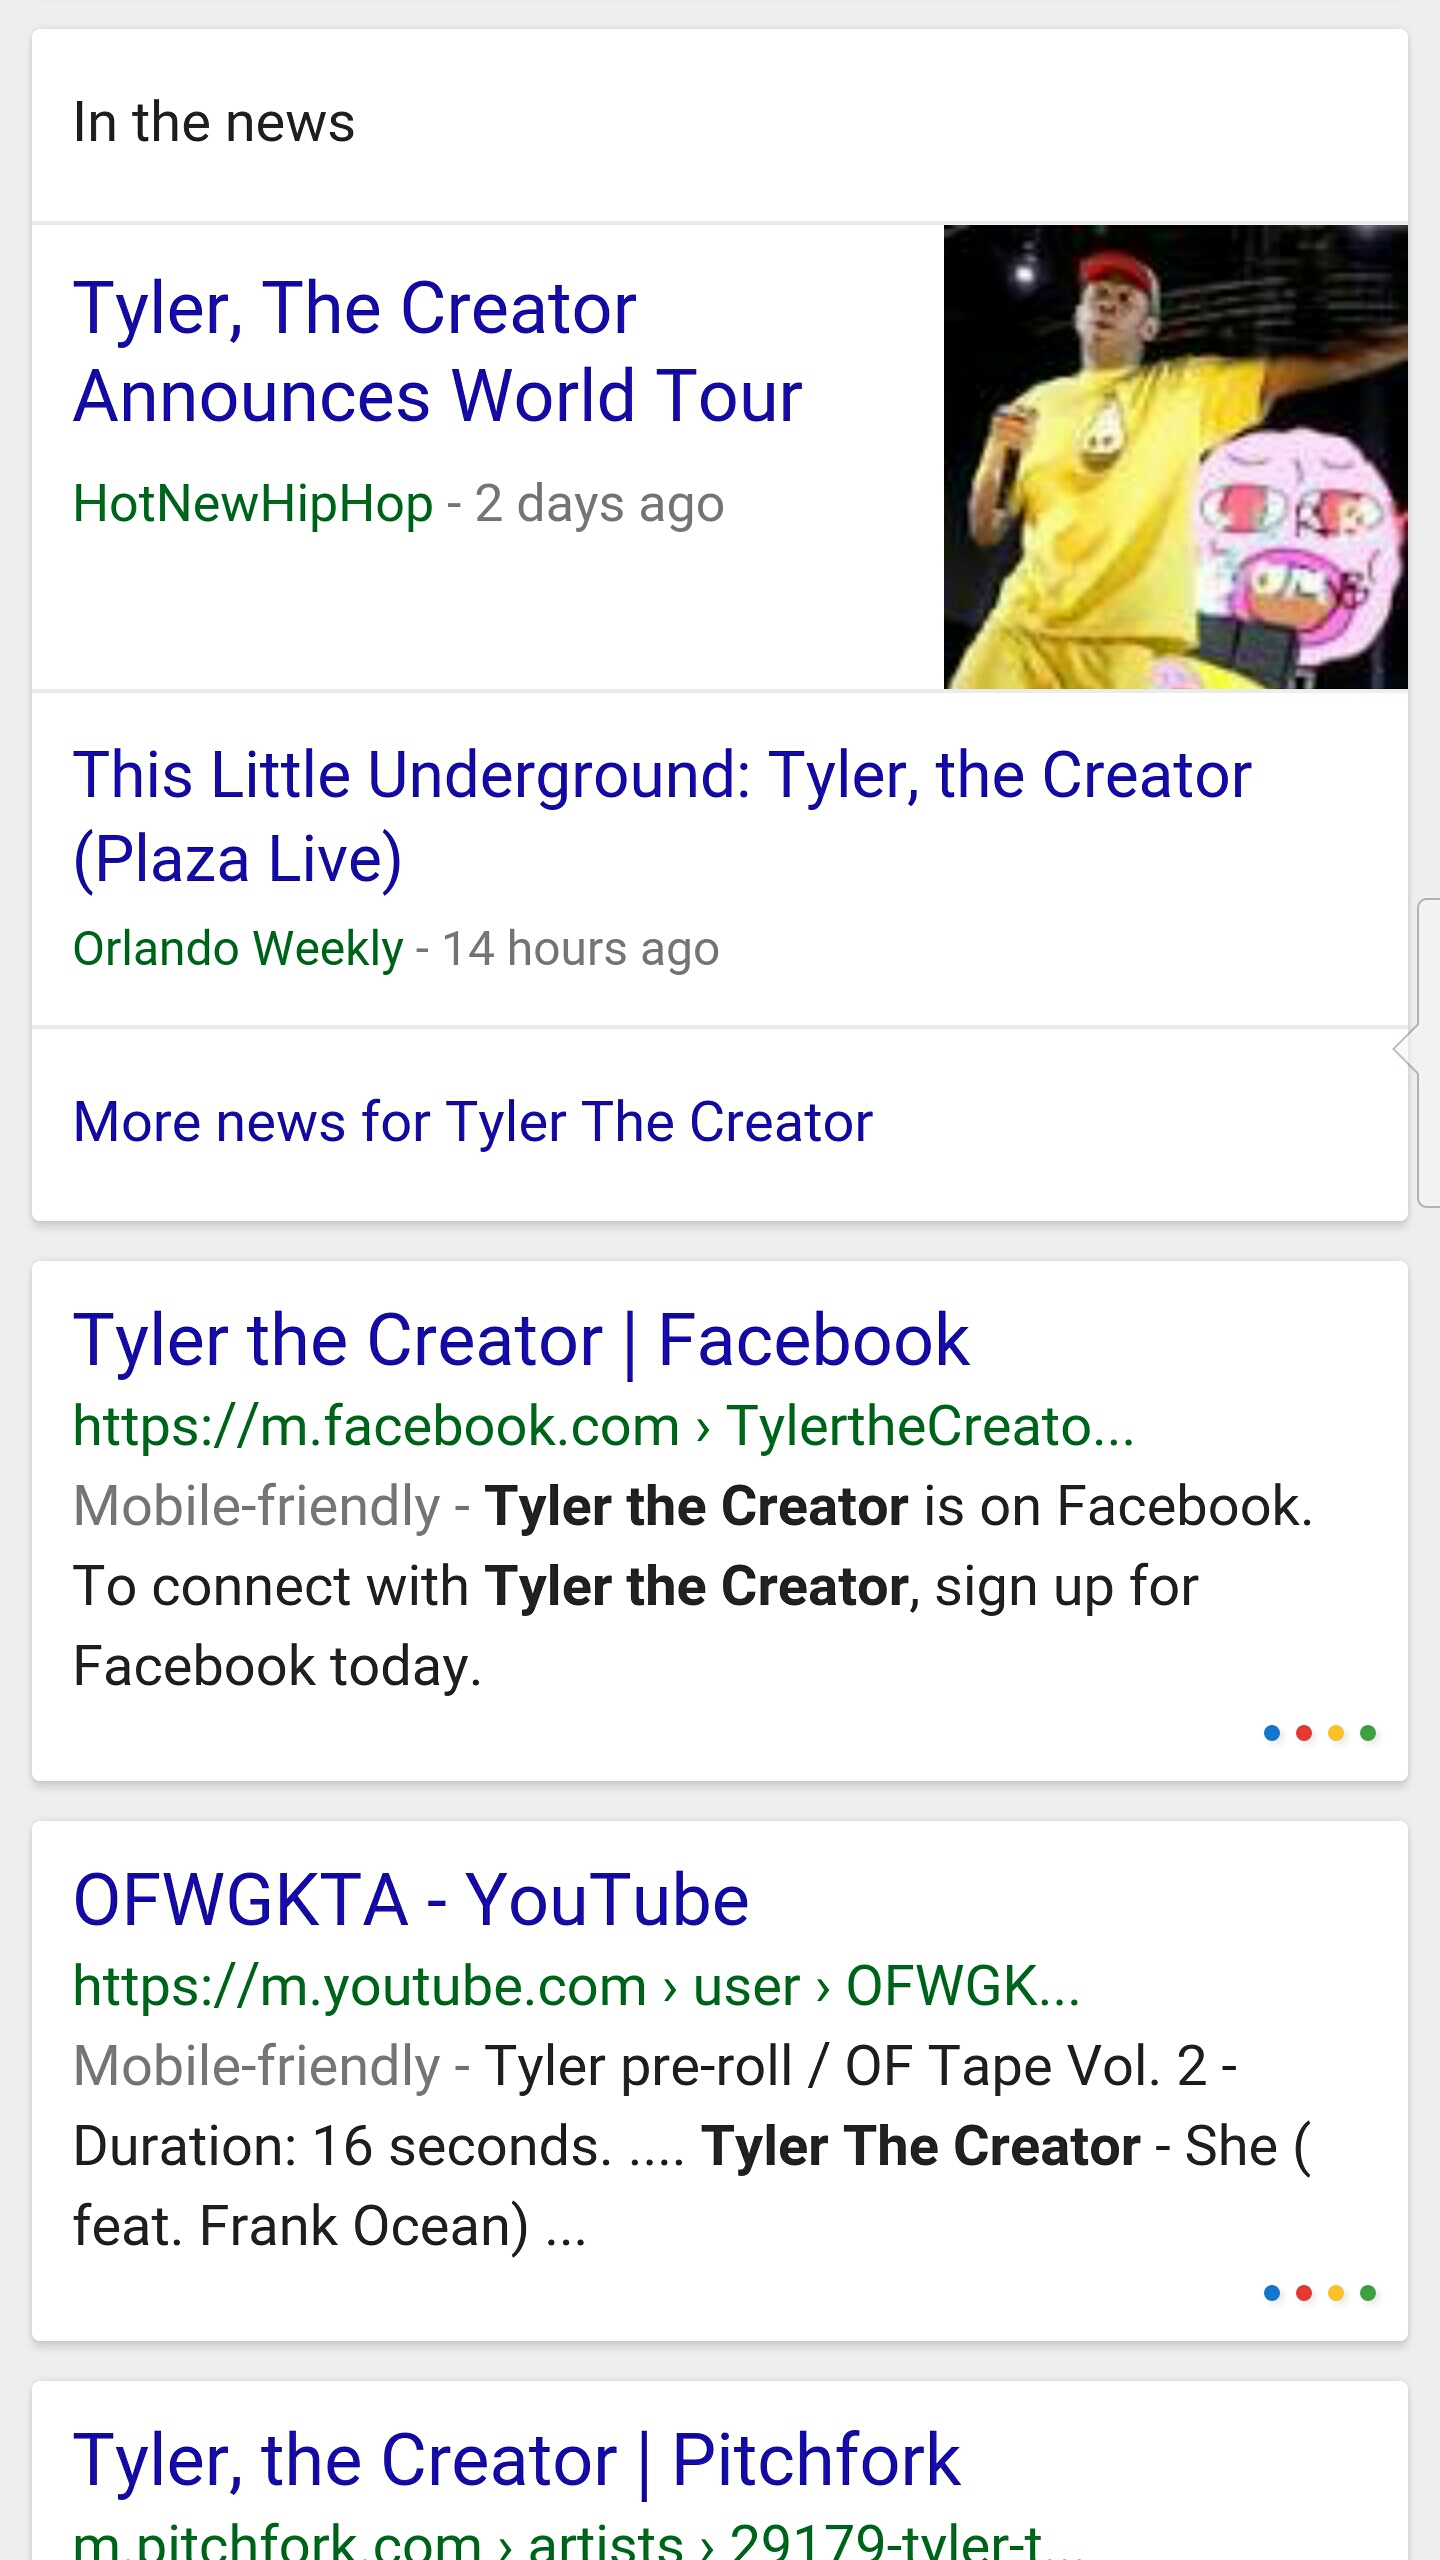 f0229a0ad786 Google is testing another Search results layout with rounded cards ...